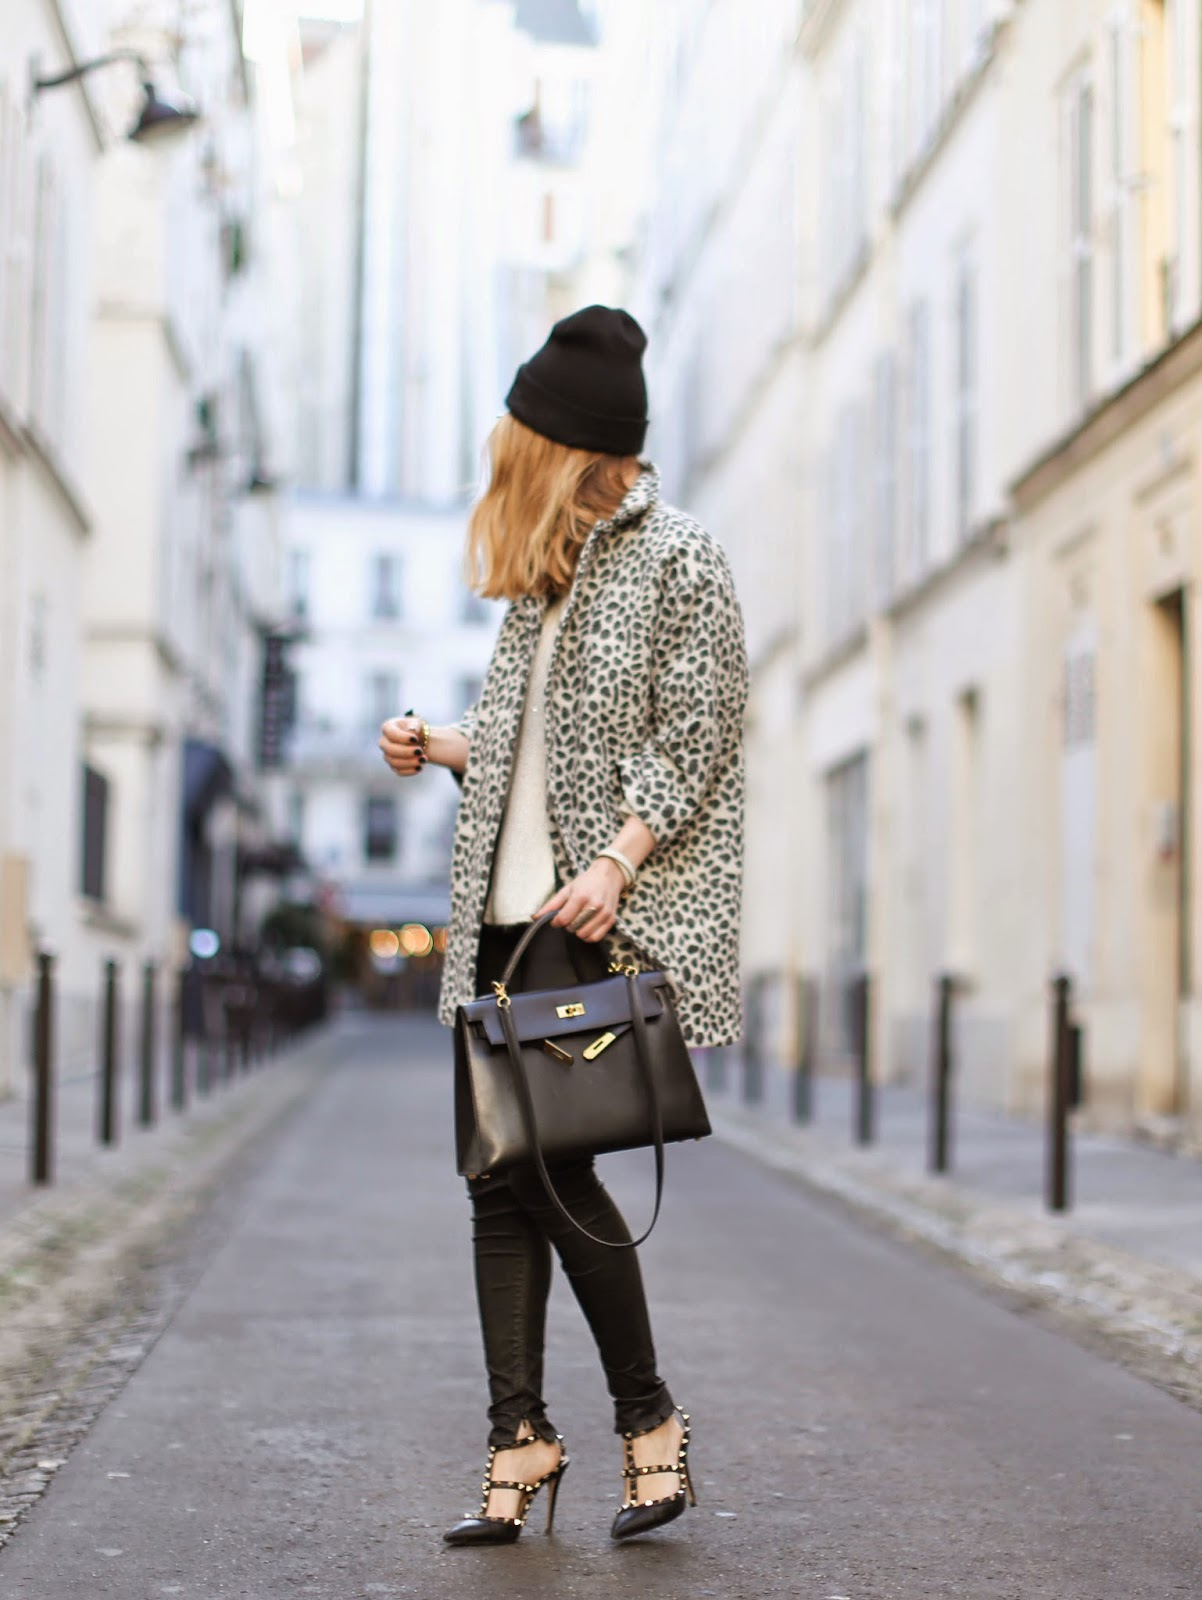 Caroline Louis is wearing a leopard print coat from Les Explorateurs